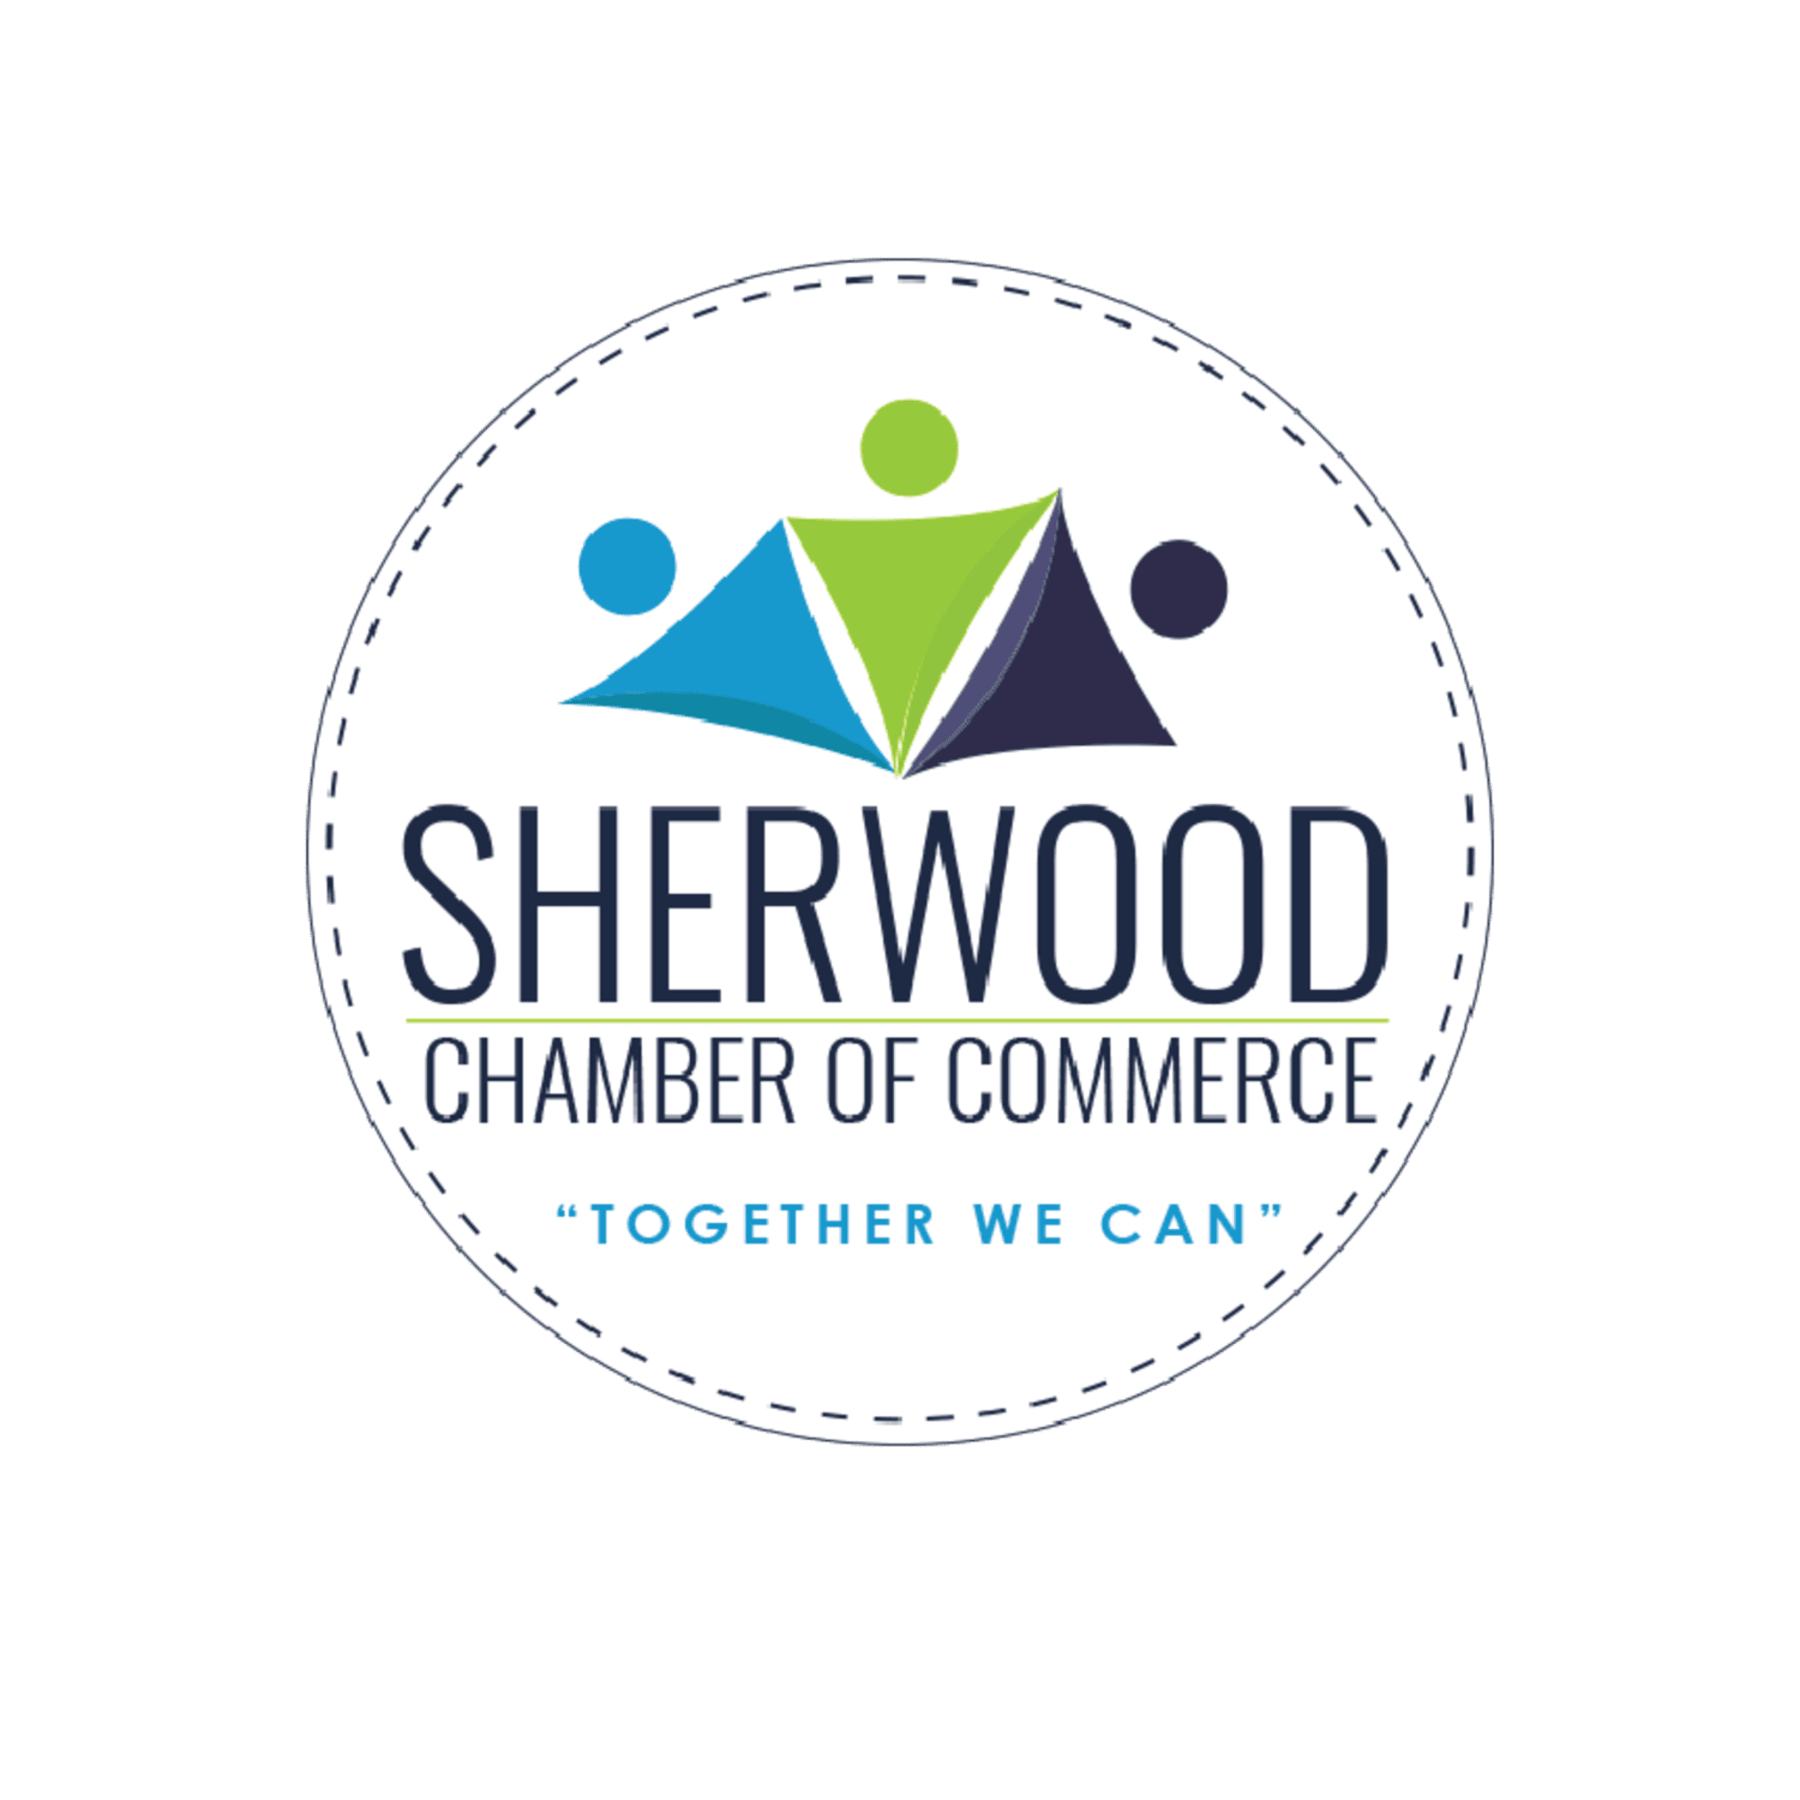 Sherwood Chamber of Commerce logo